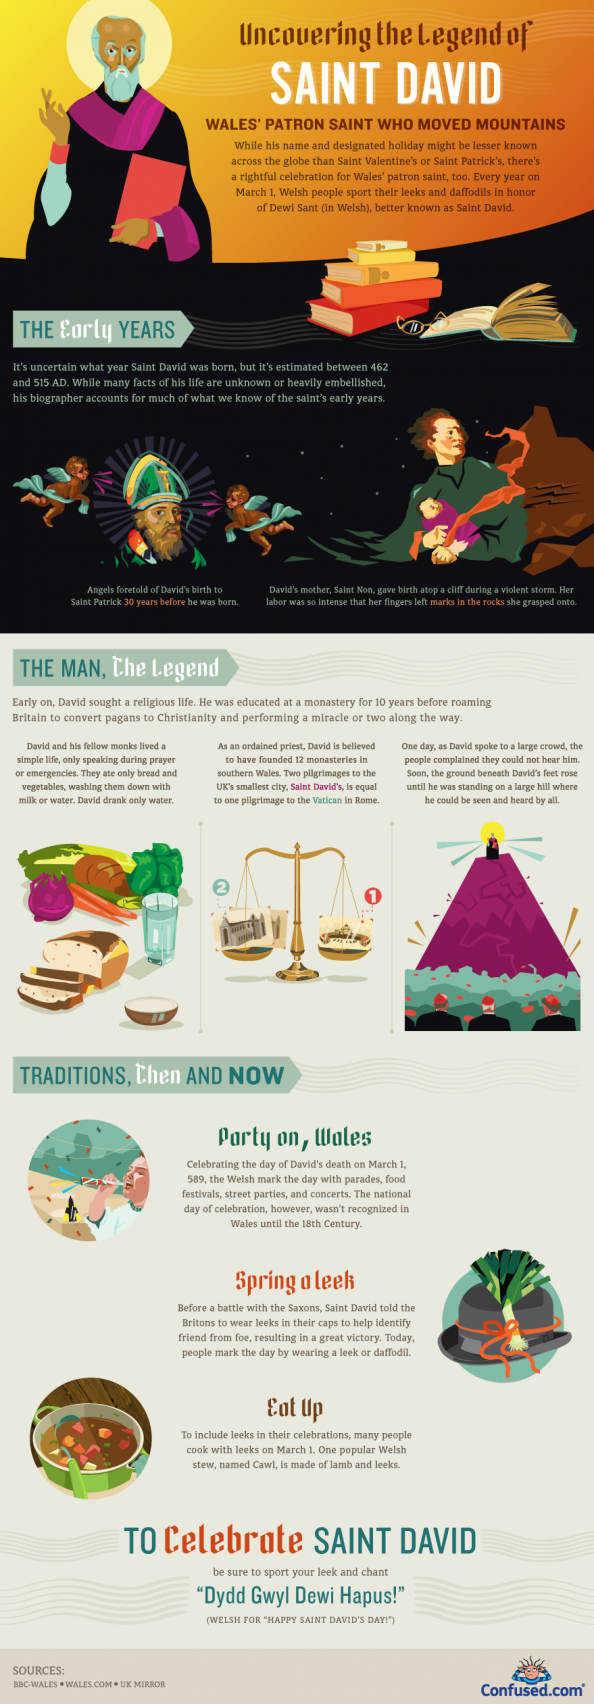 St. David's Day: Uncovering the legend Infographic